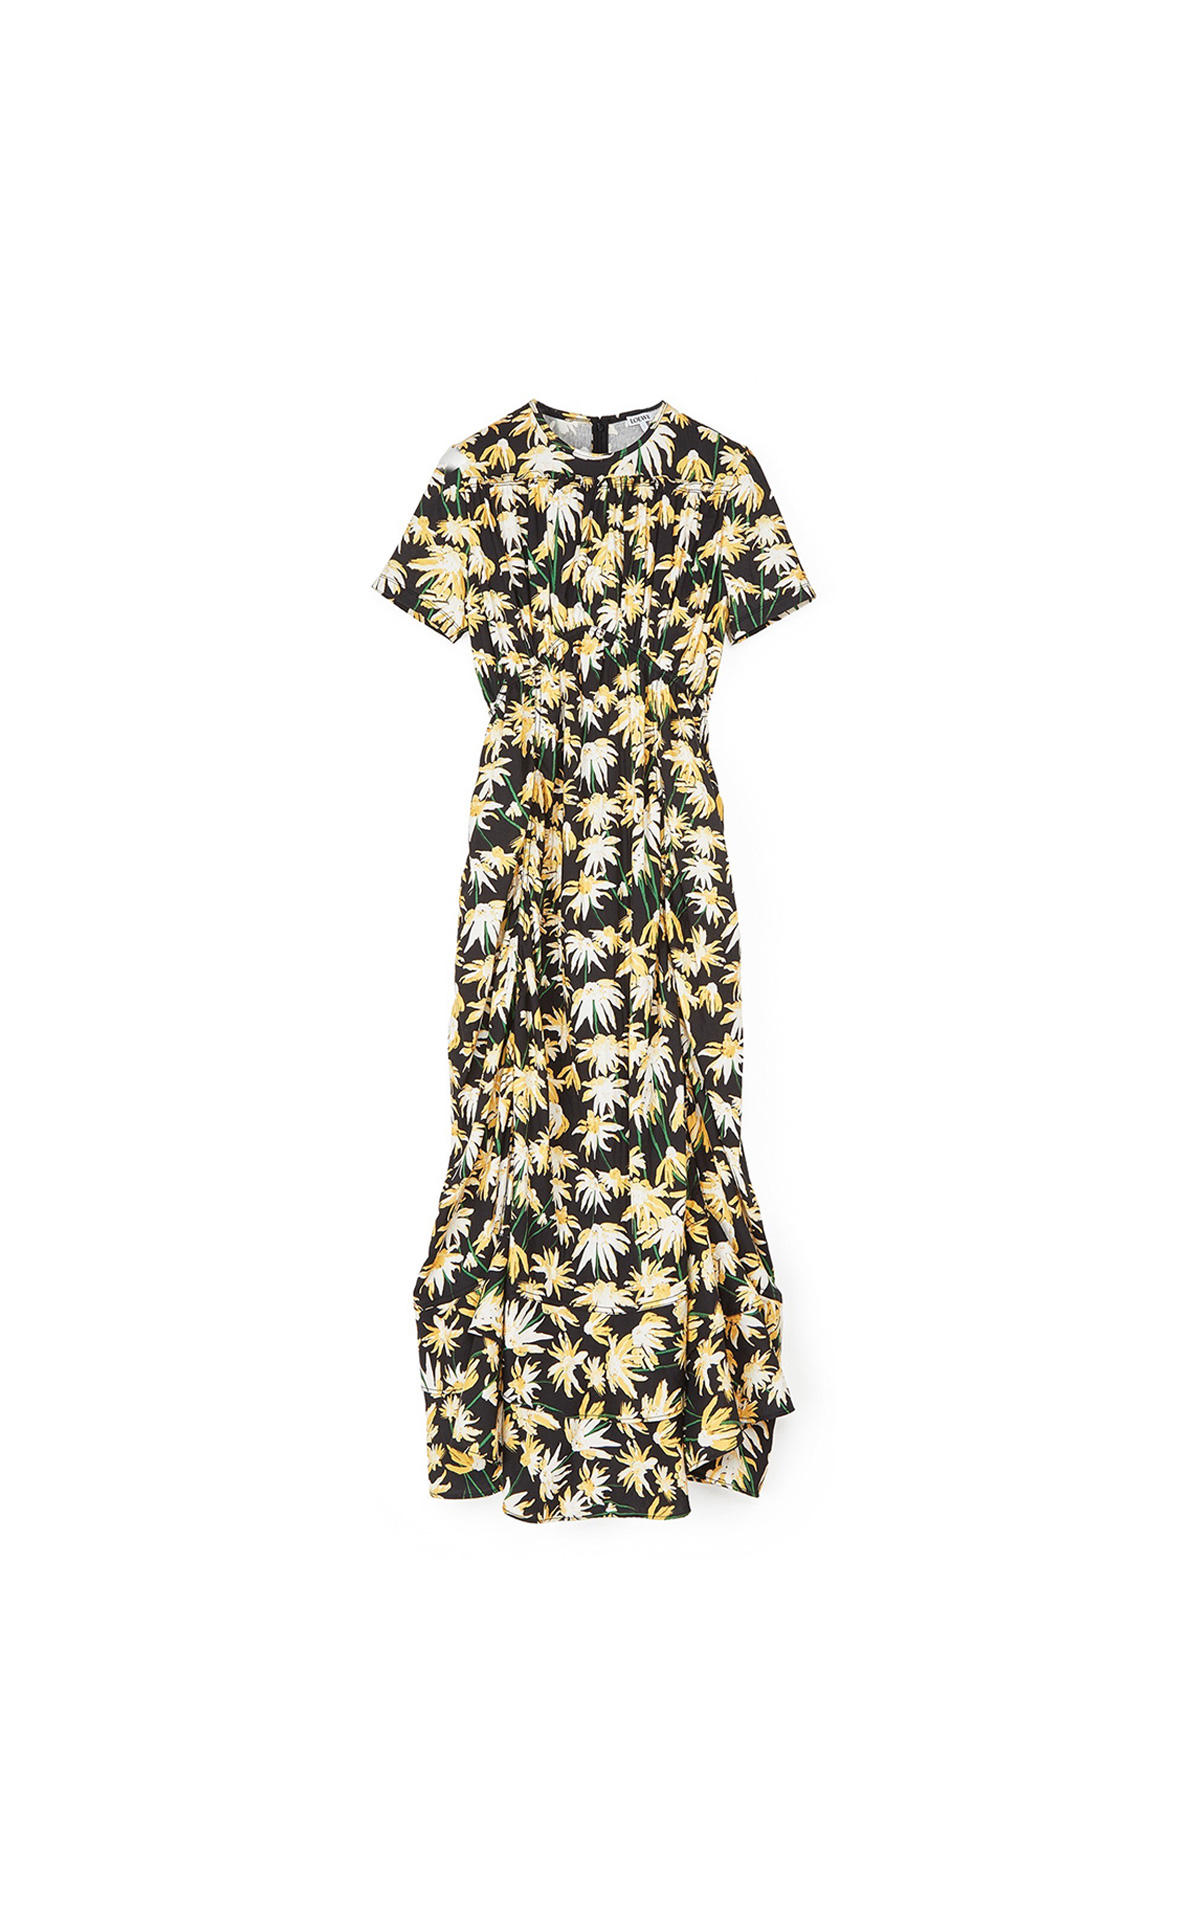 Loewe Women's Daisy ruffle gathered dress at The Bicester Village Shopping Collection